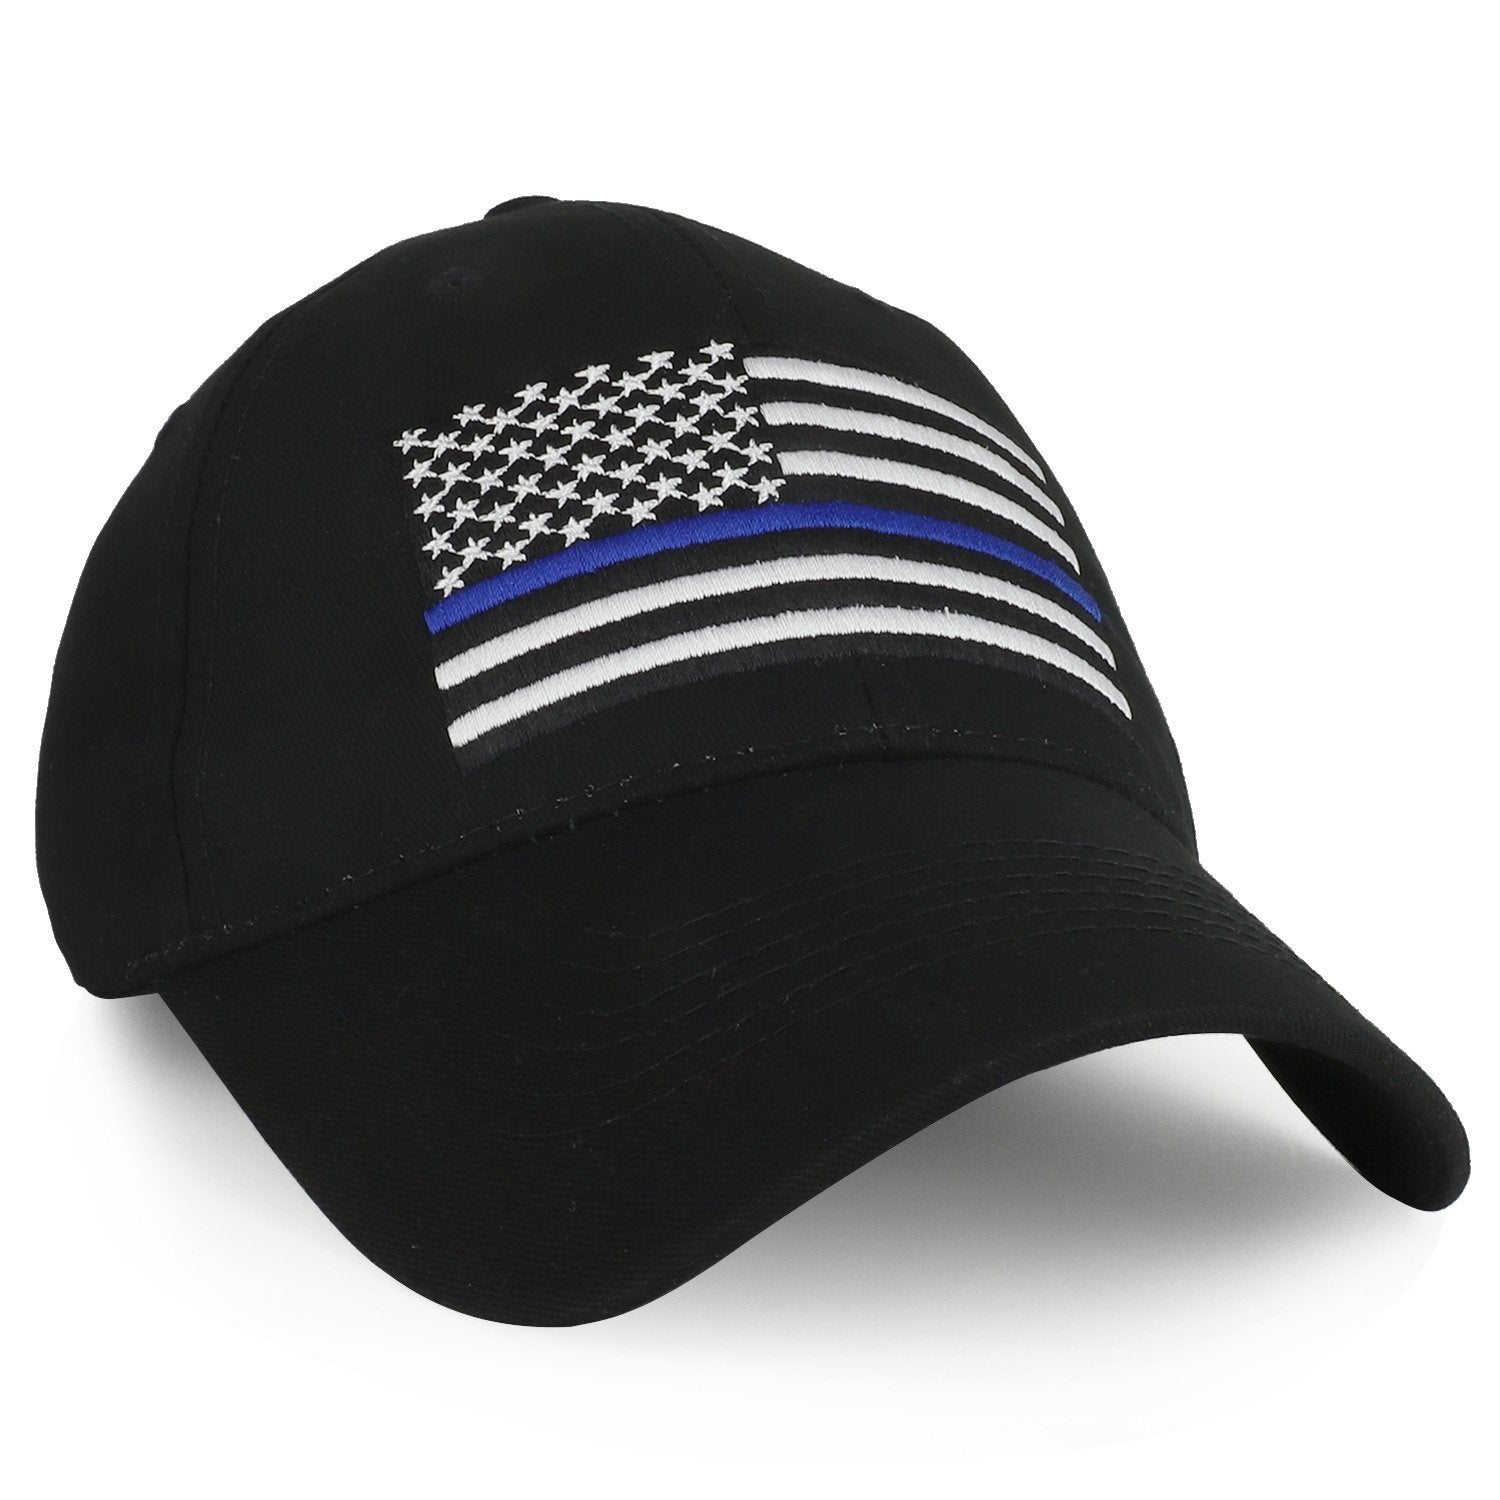 6a391d0c508 Armycrew Law Enforcement US Thin Blue Line Flag Embroidered Baseball Cap